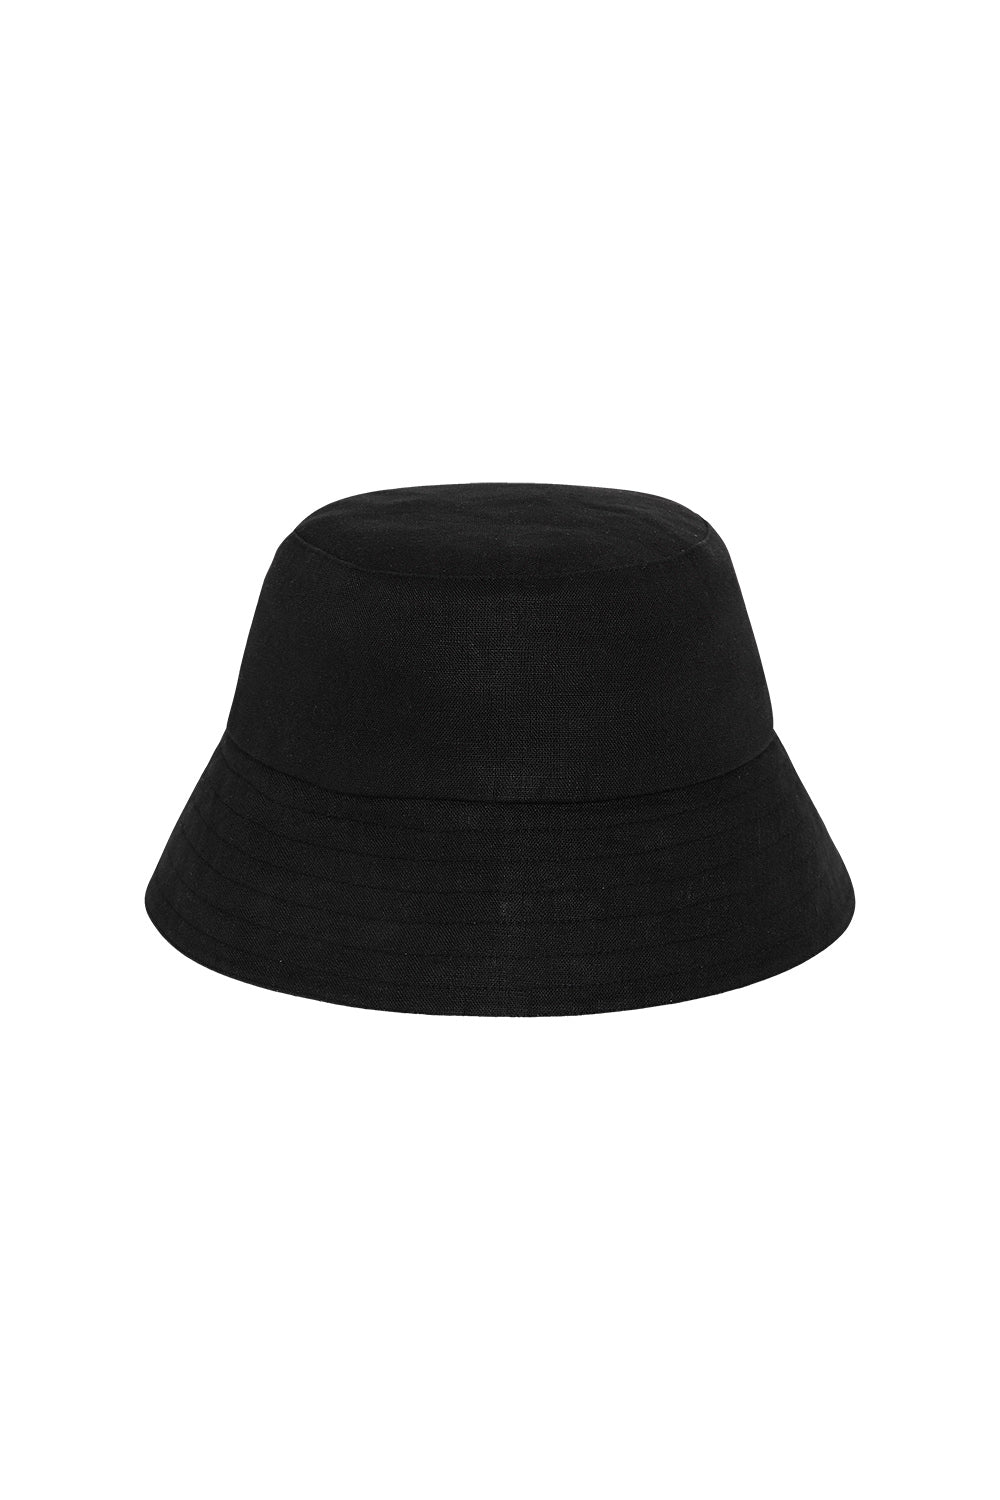 SIR the label ALENA BUCKET HAT BLACK